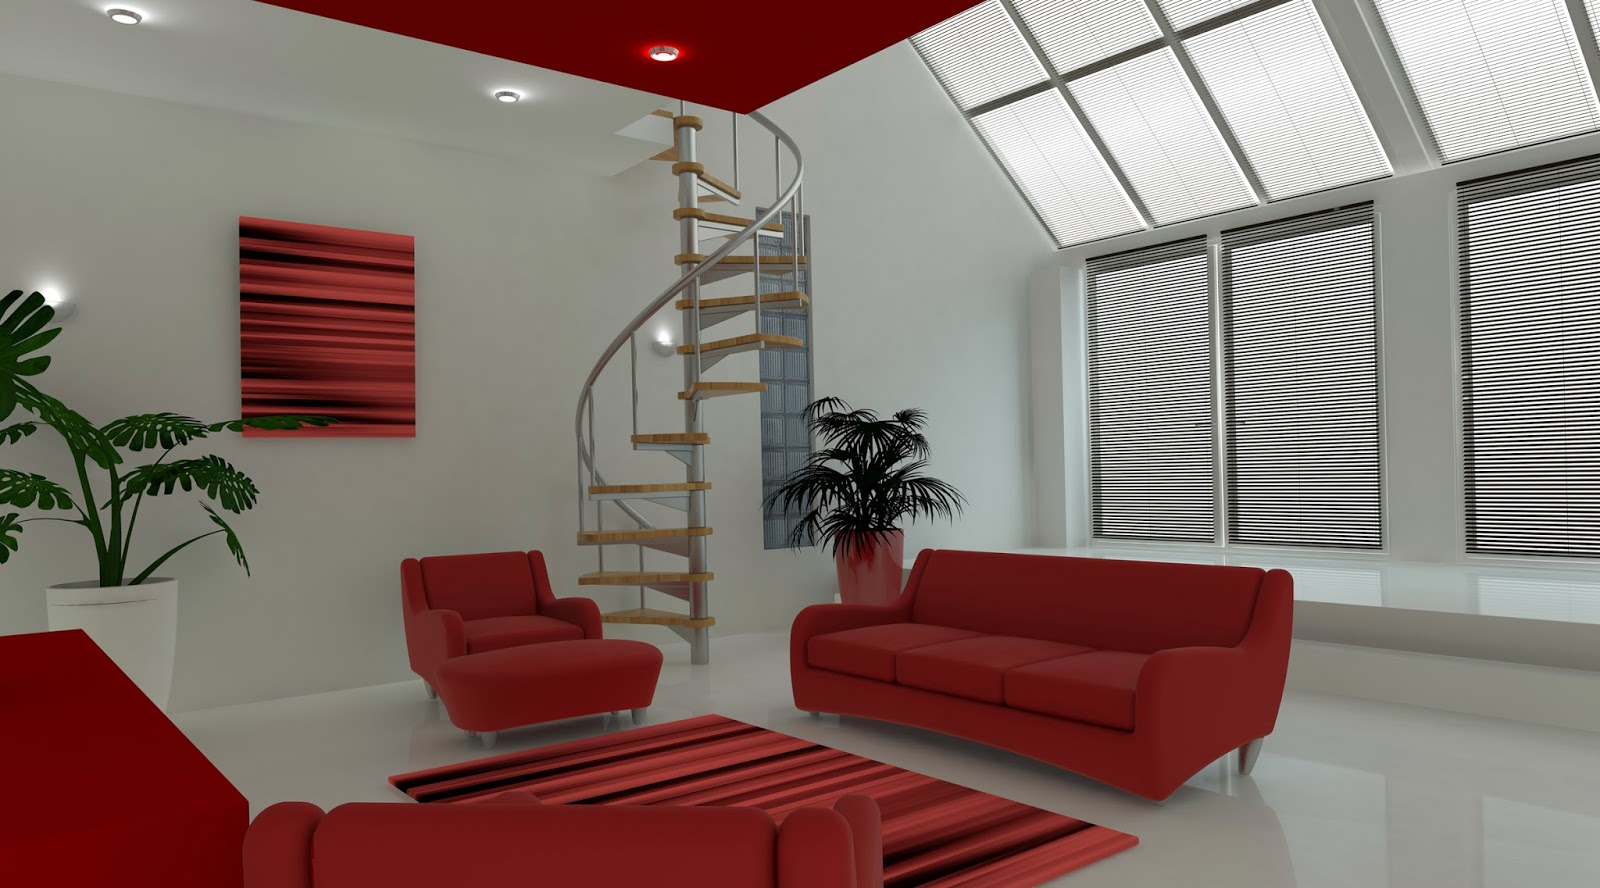 3d Room Models Designs